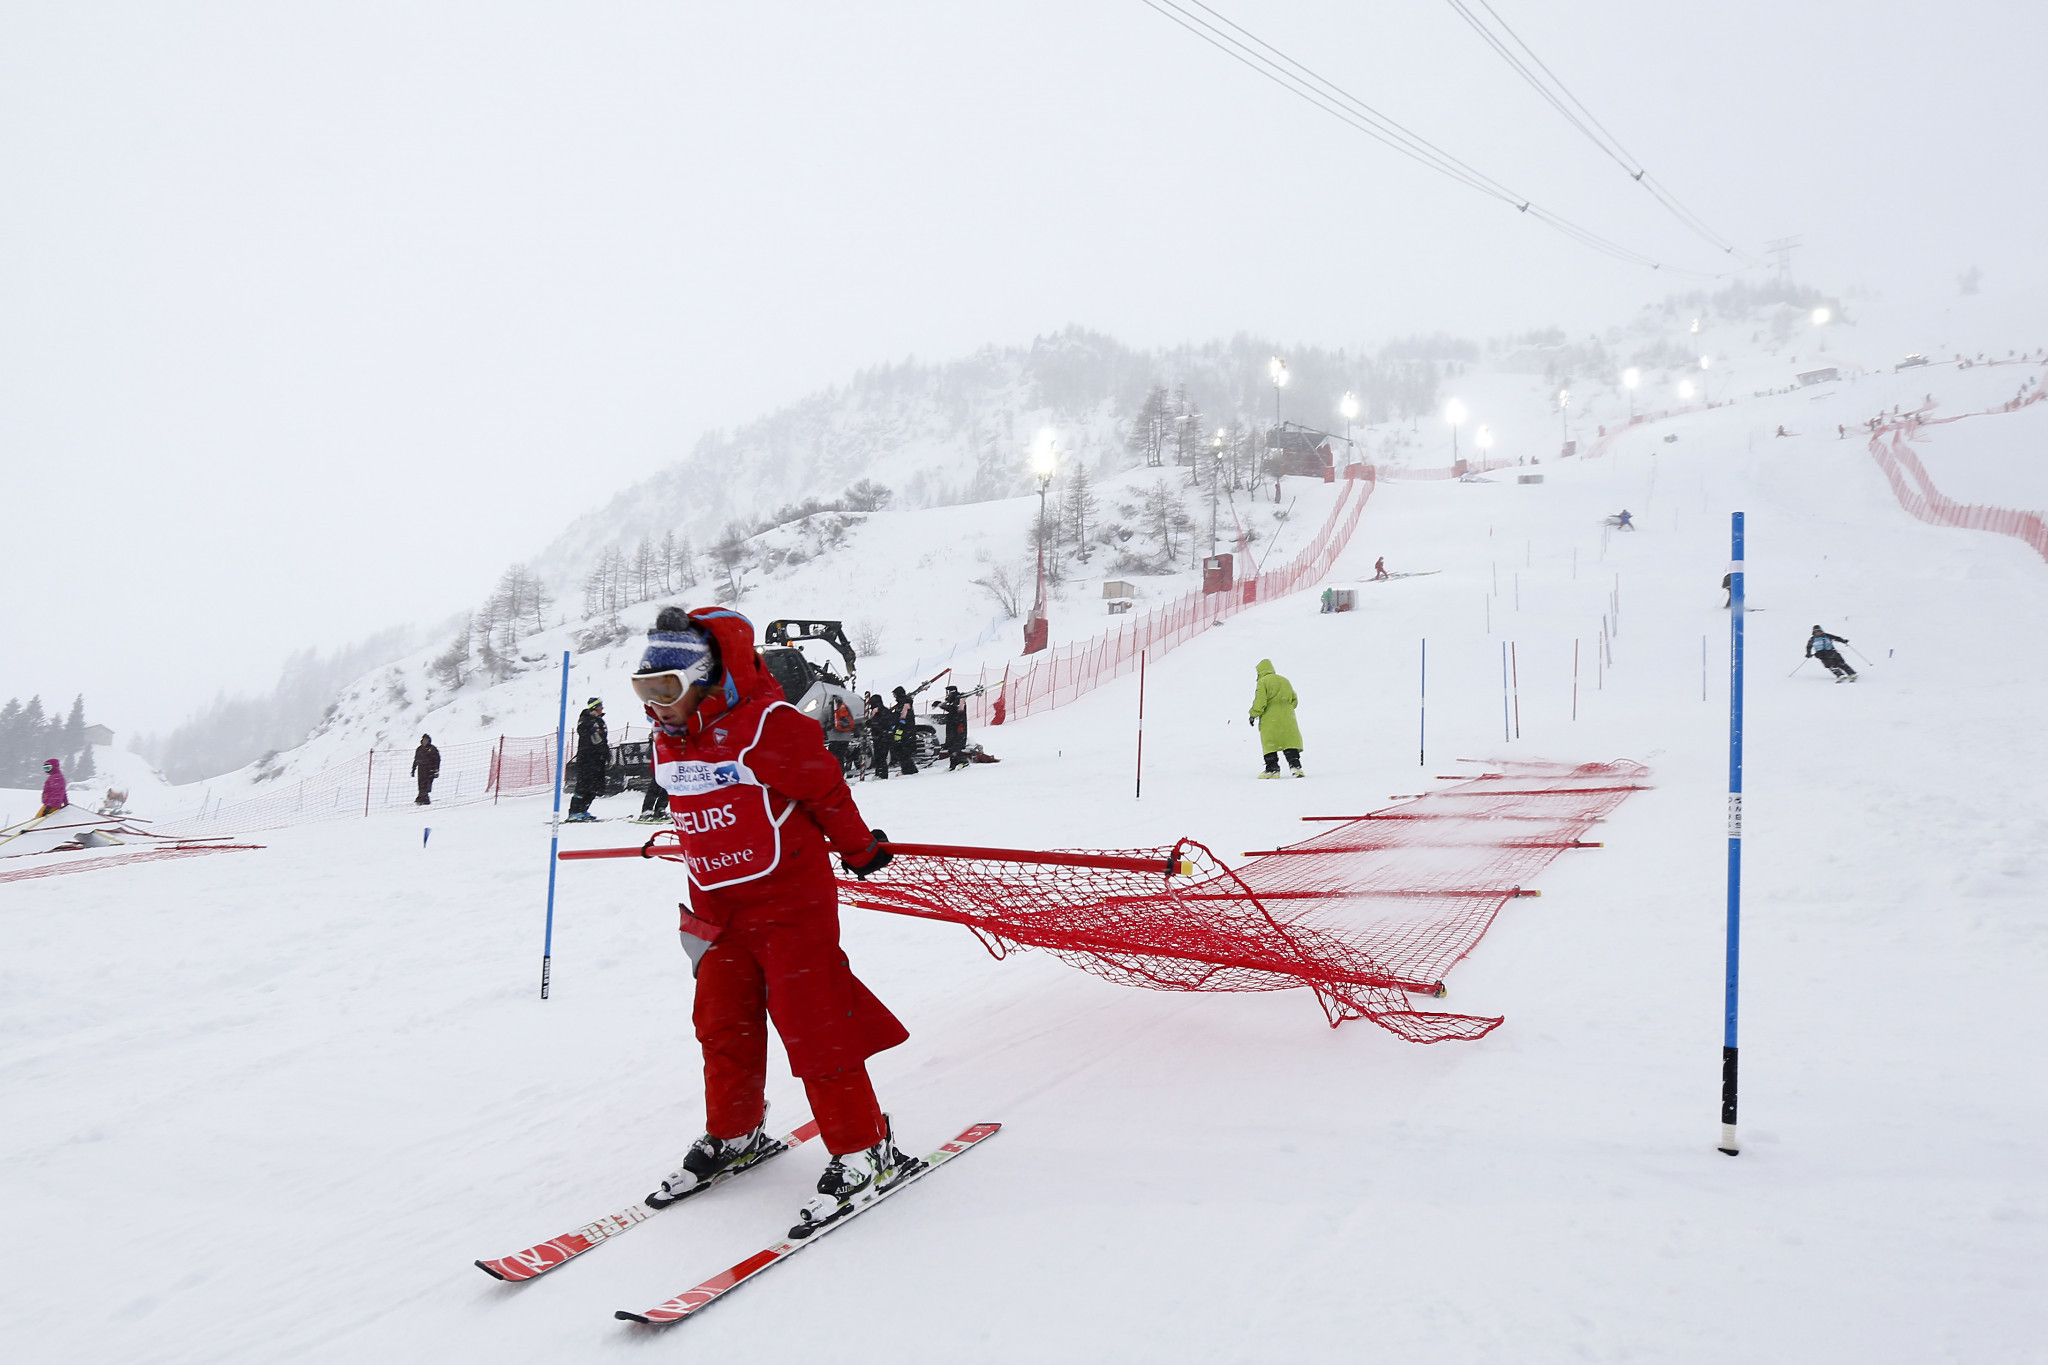 Downhill event at FIS Alpine Ski World Cup in Val d'Isère rescheduled due to heavy snow